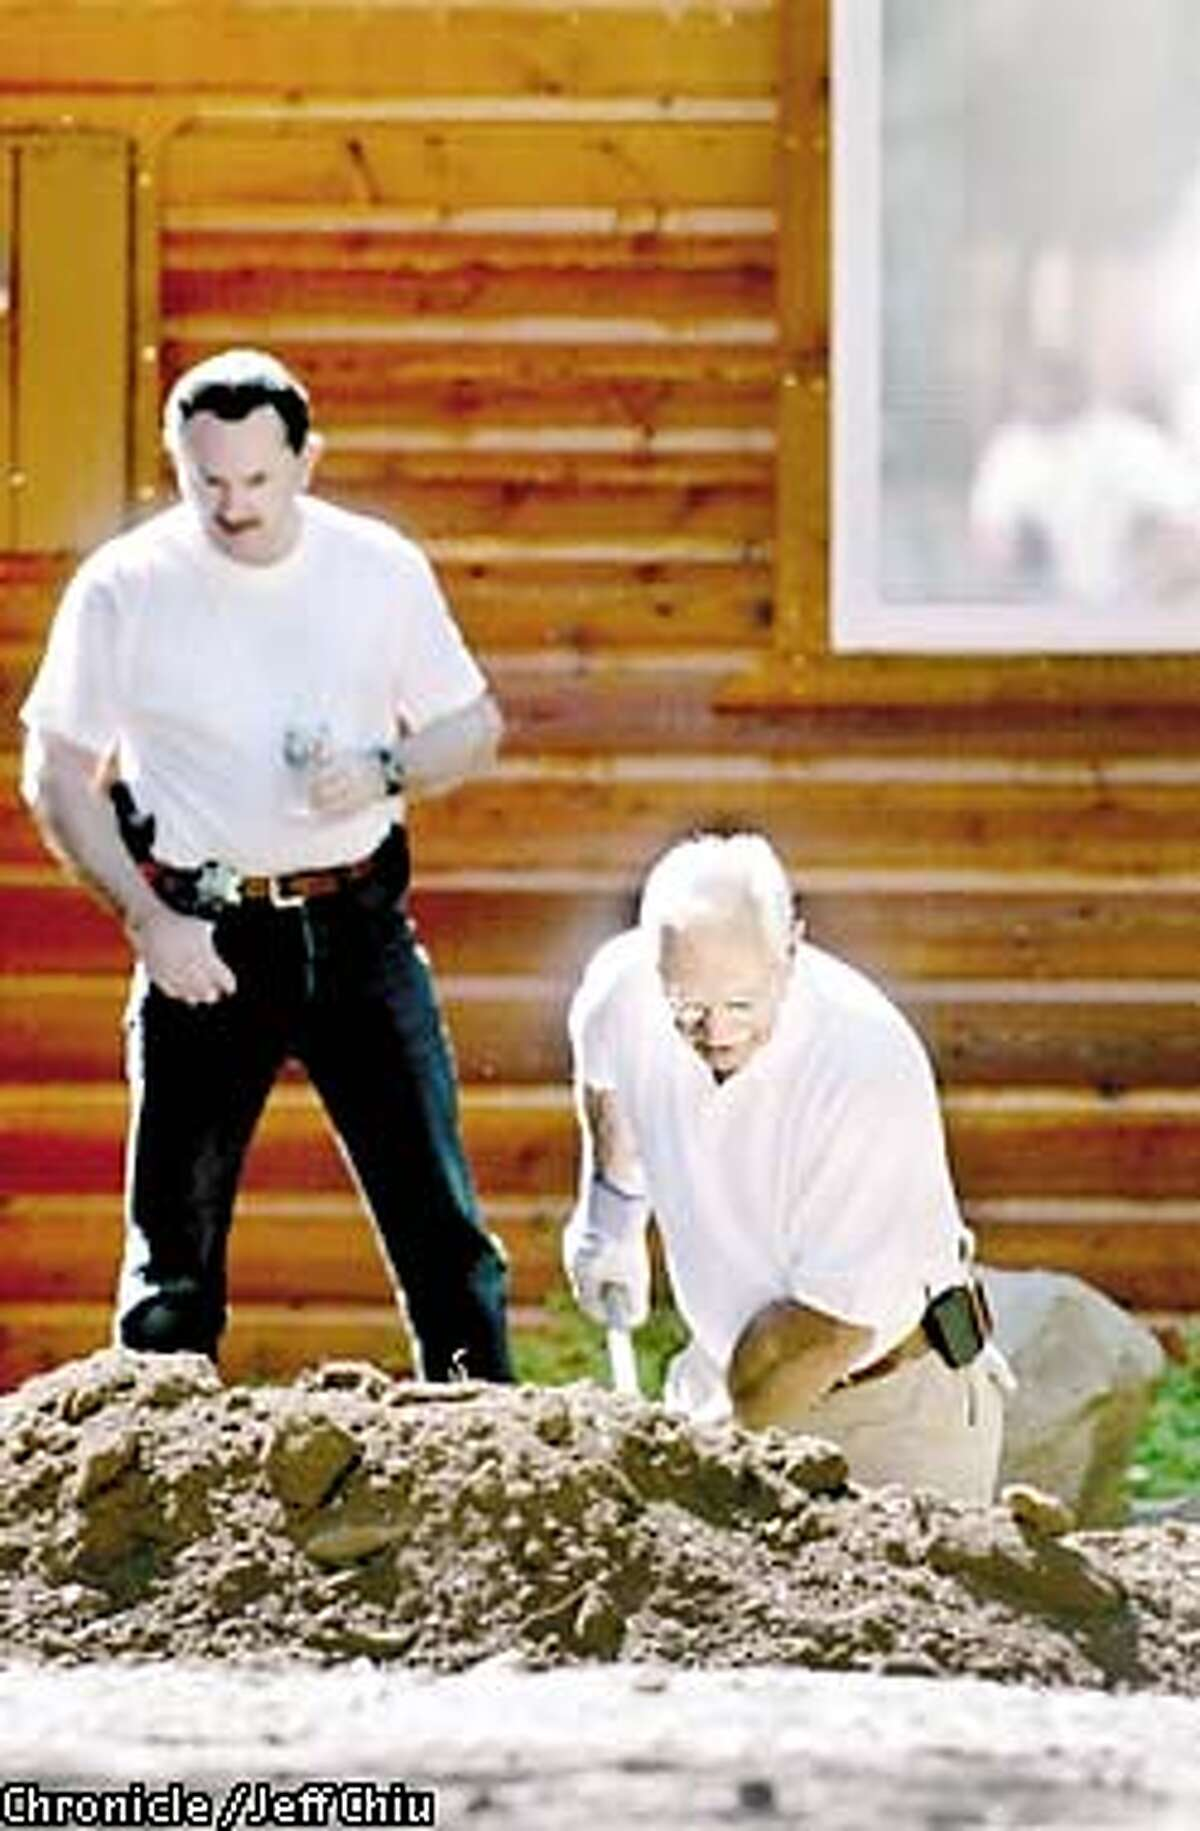 Authorities from the Truckee Police, the California Department of Justice, and others continue to dig at the Truckee residence of former Catholic priest Stepen Kiesle of Fremont on Thursday morning. Photo by Jeff Chiu/The Chronicle